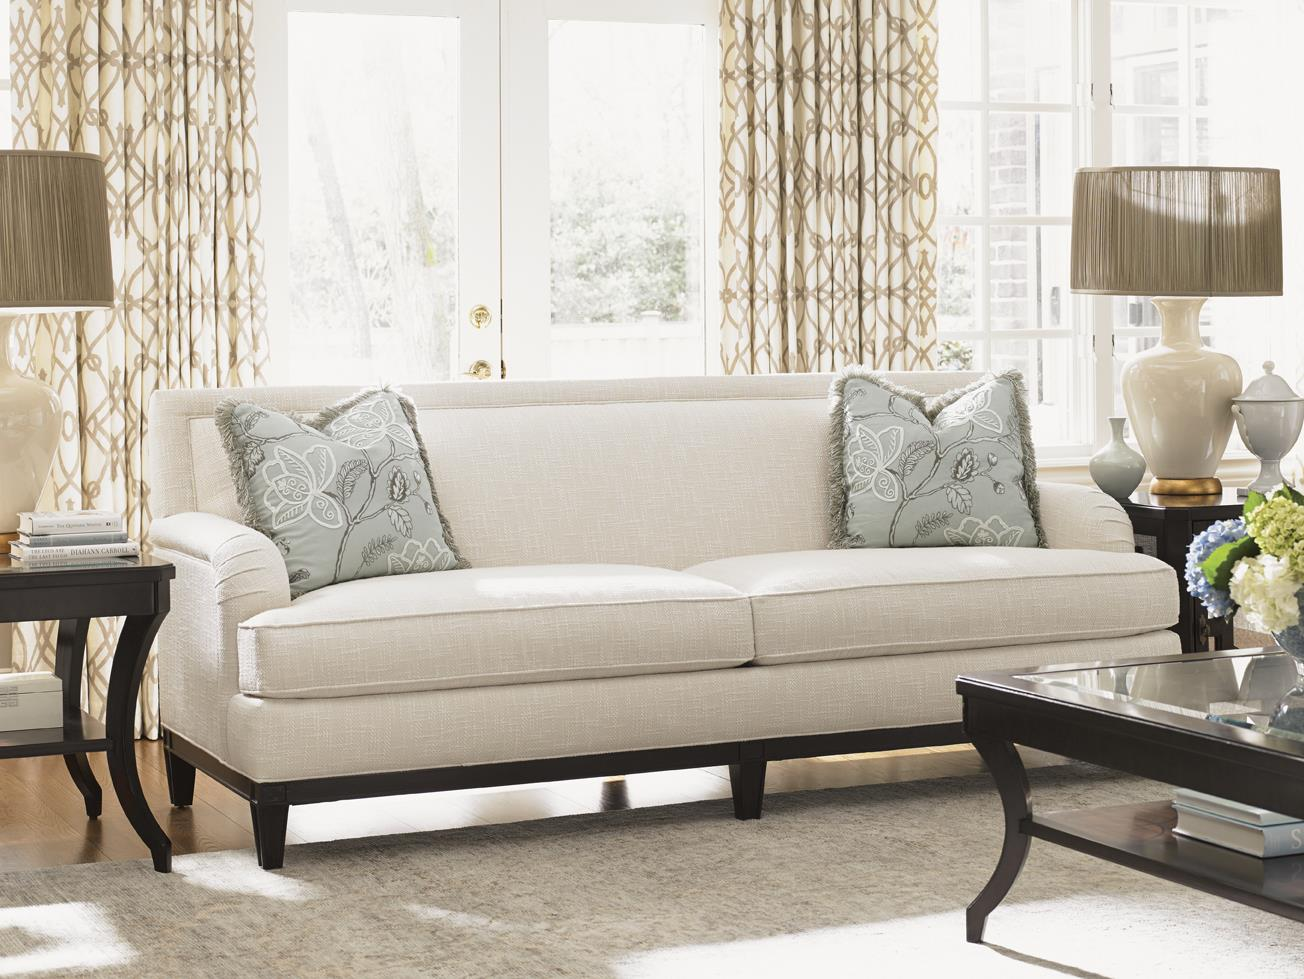 Lexington kensington place transitional aubrey sofa with